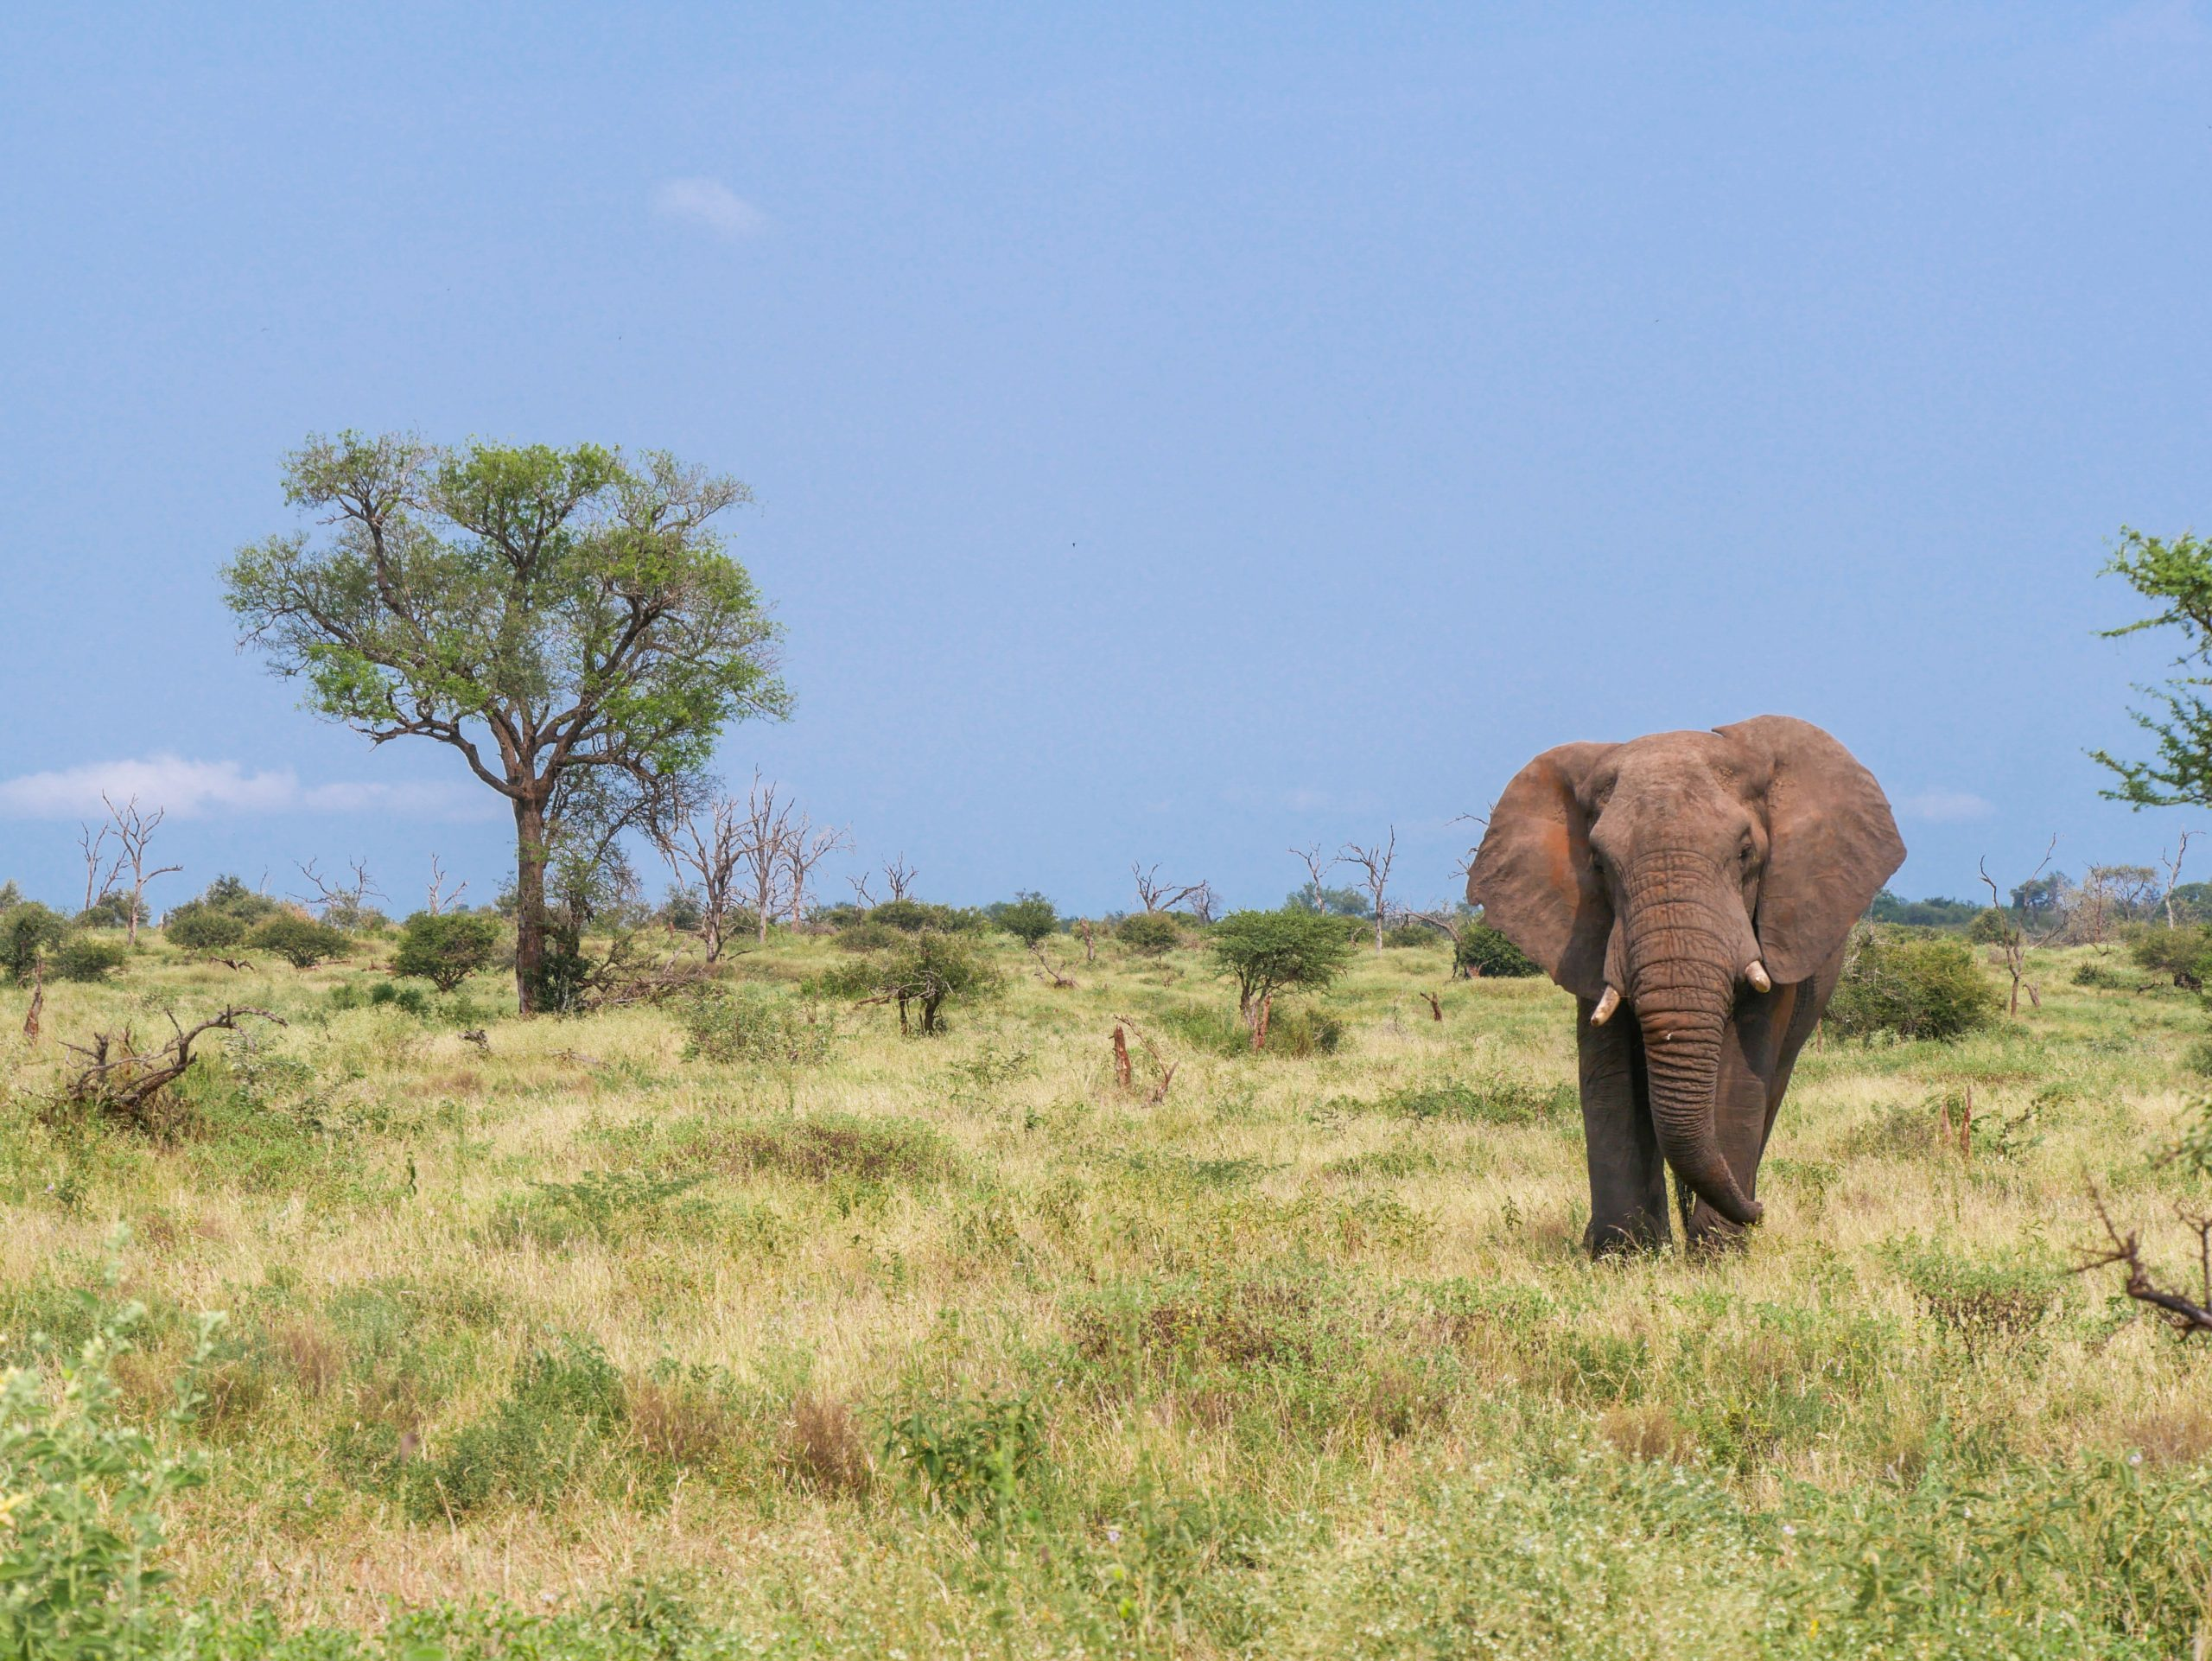 Elephant-safaris-circuit-expedition-engagee